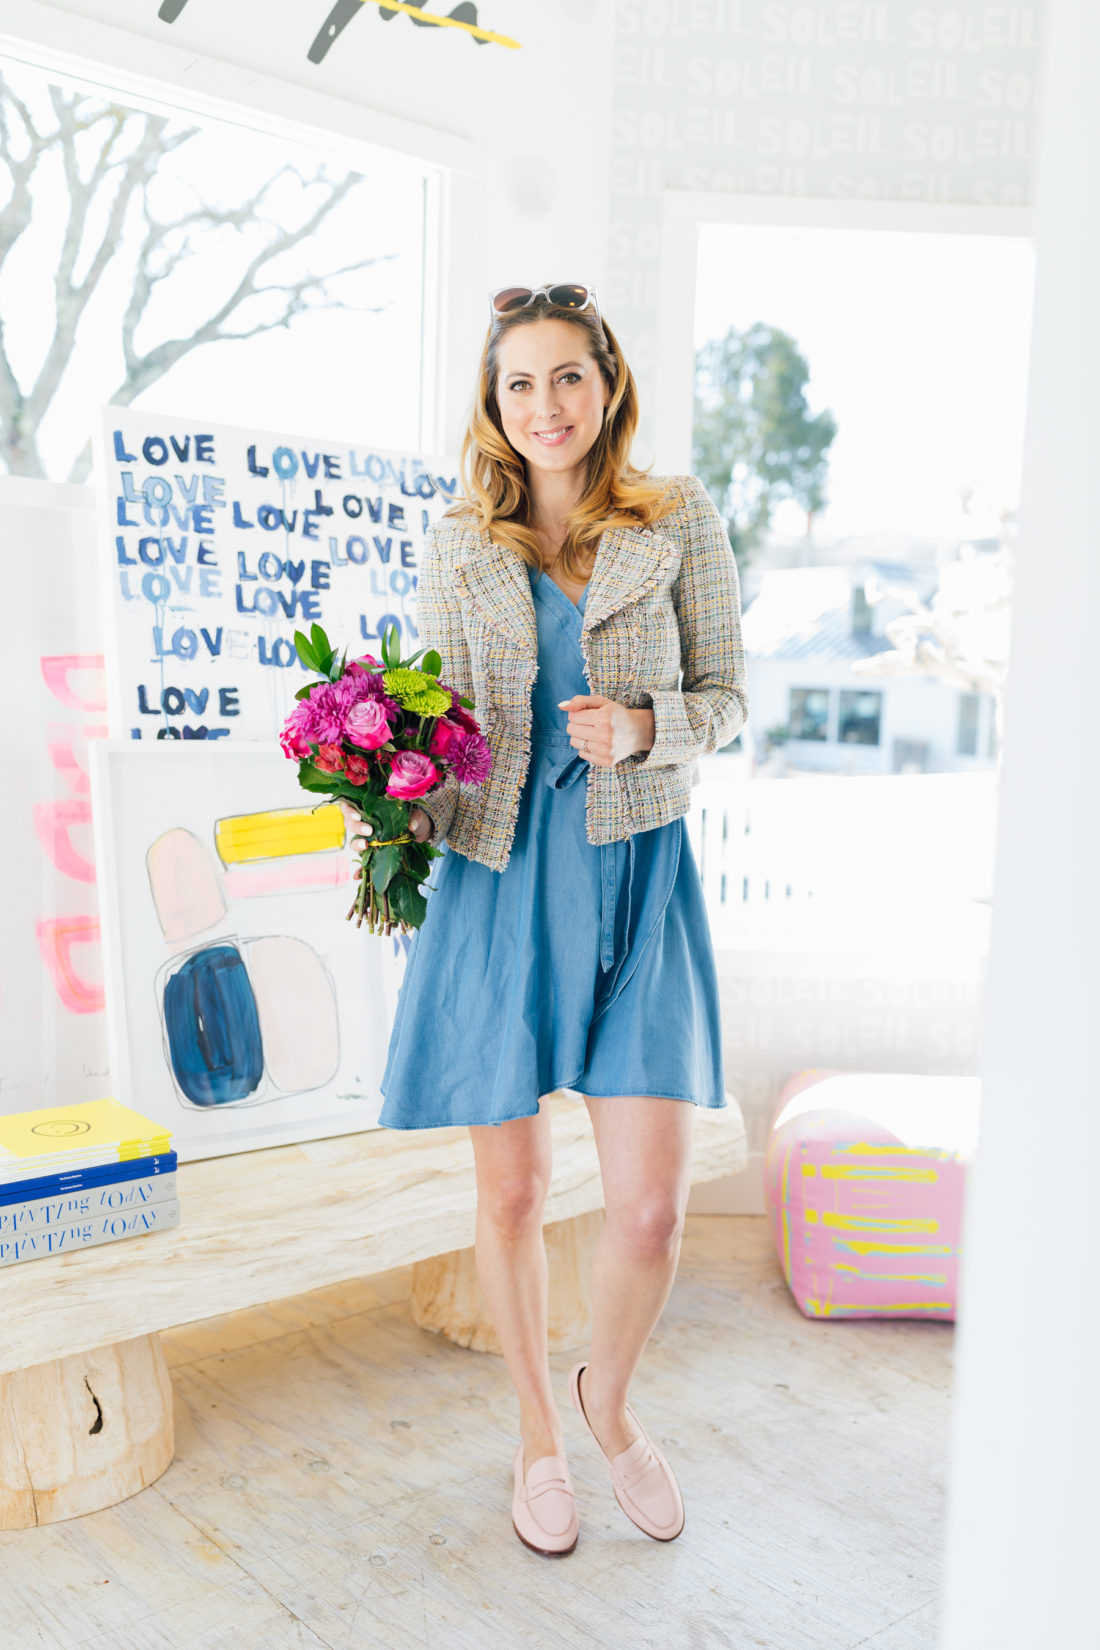 Eva Amurri Martino wears Ann Taylor Loft and shares her favorite Easter outfits